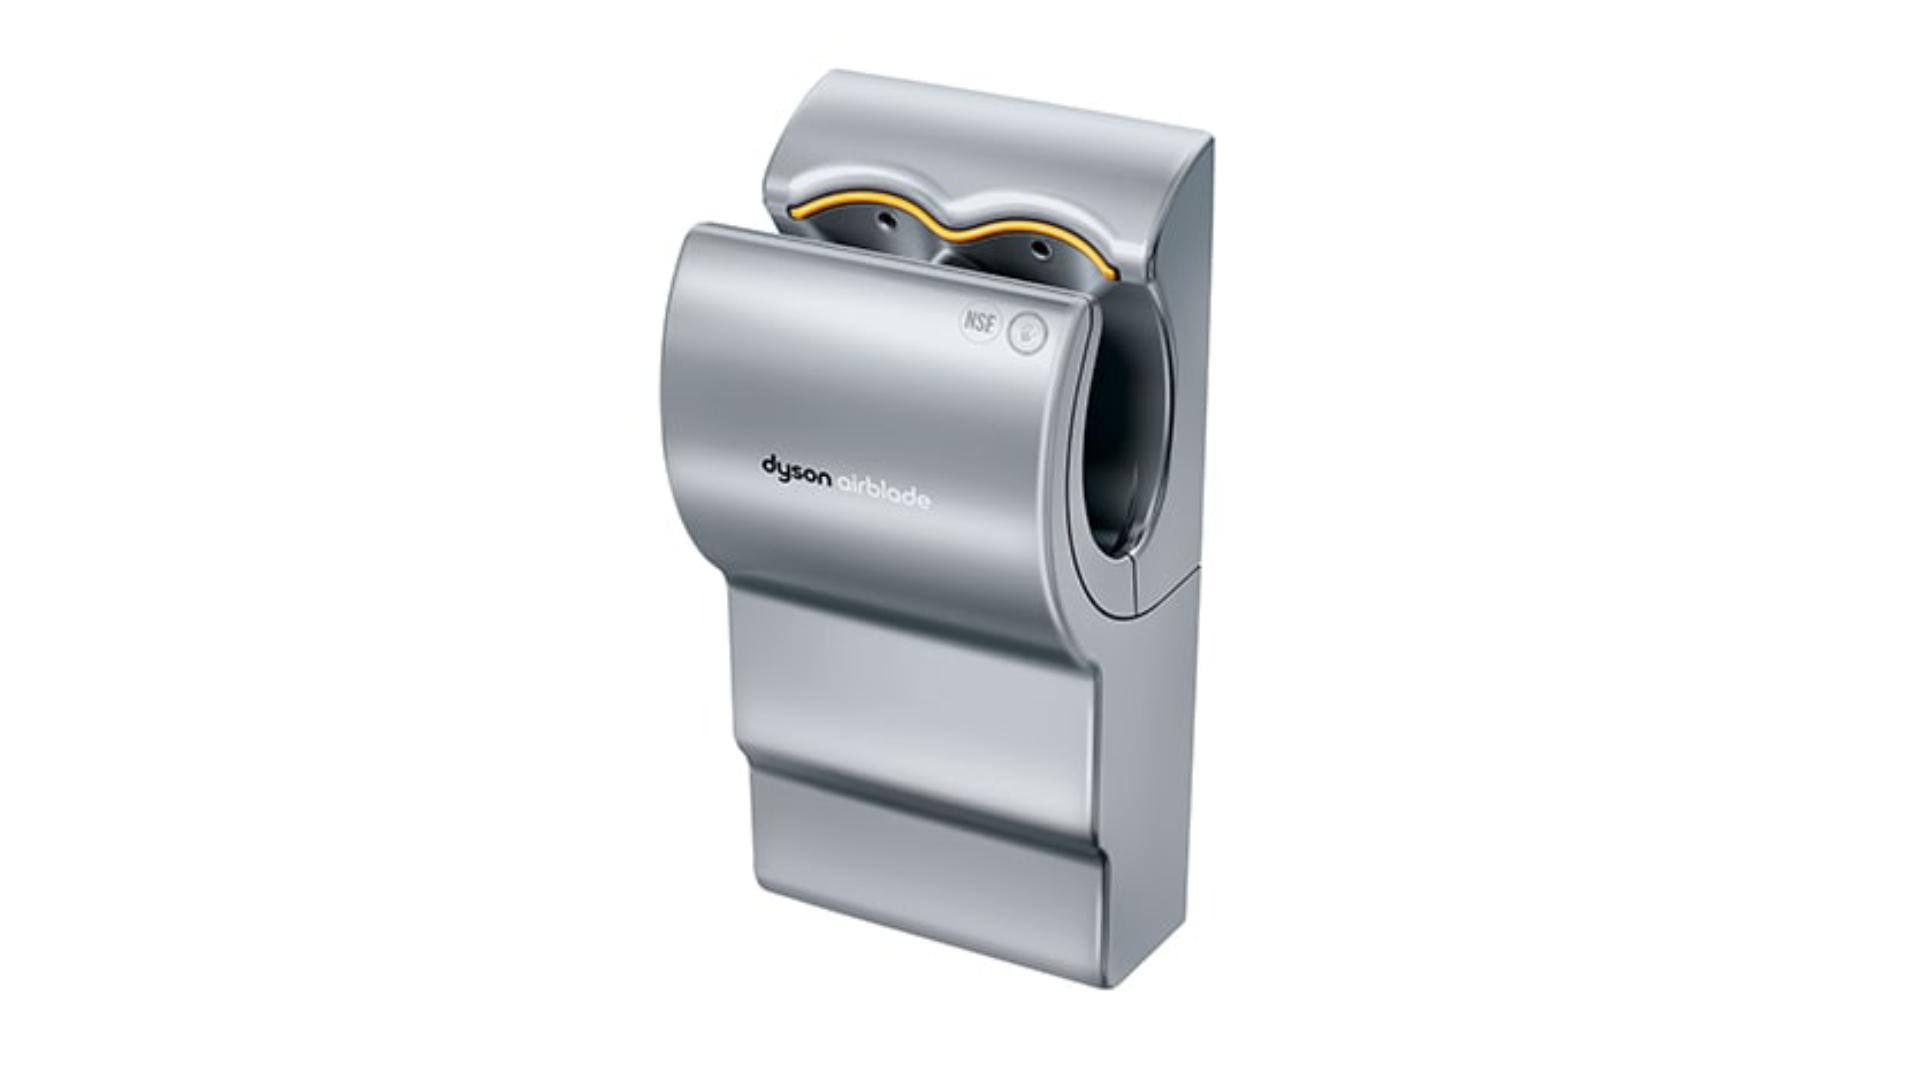 Front view of the AB01 hand dryer